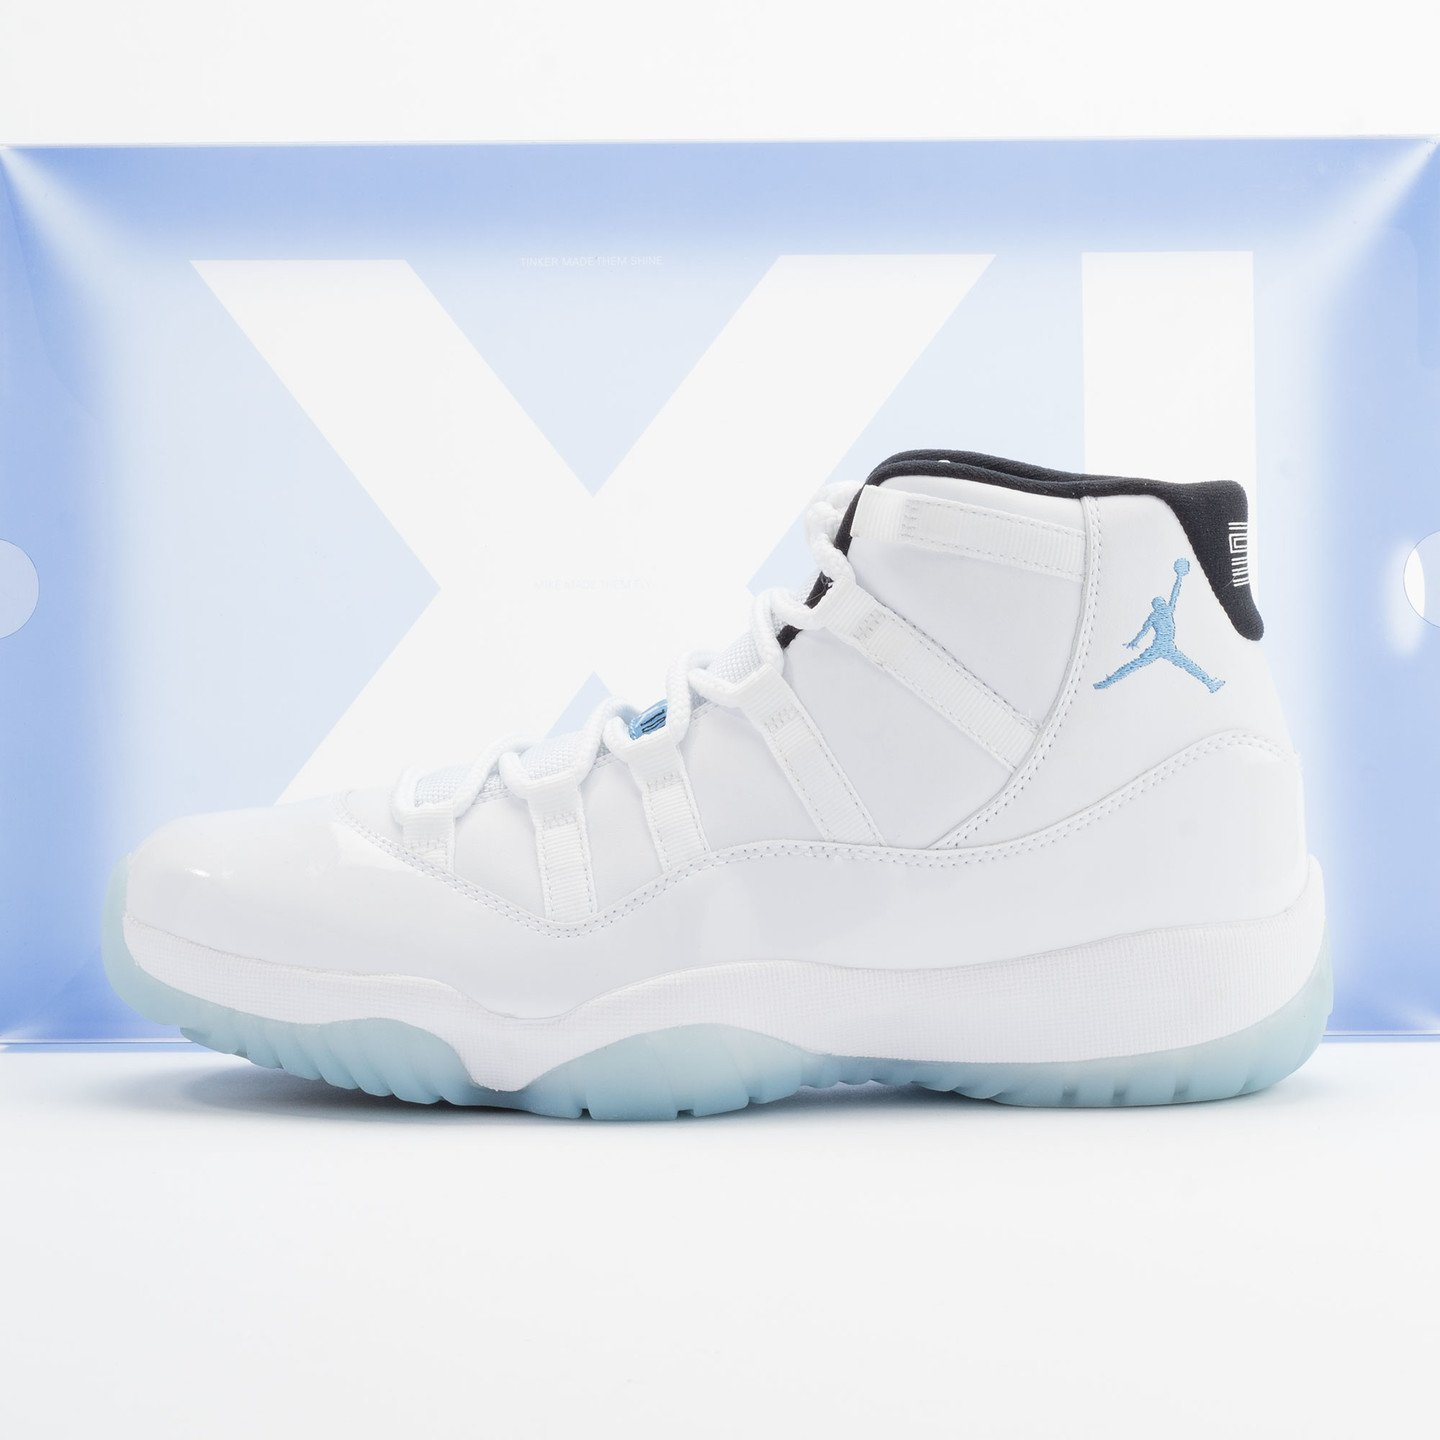 Jordan Air Jordan 11 Retro White/Legend Blue-Black 378037-117-42.5